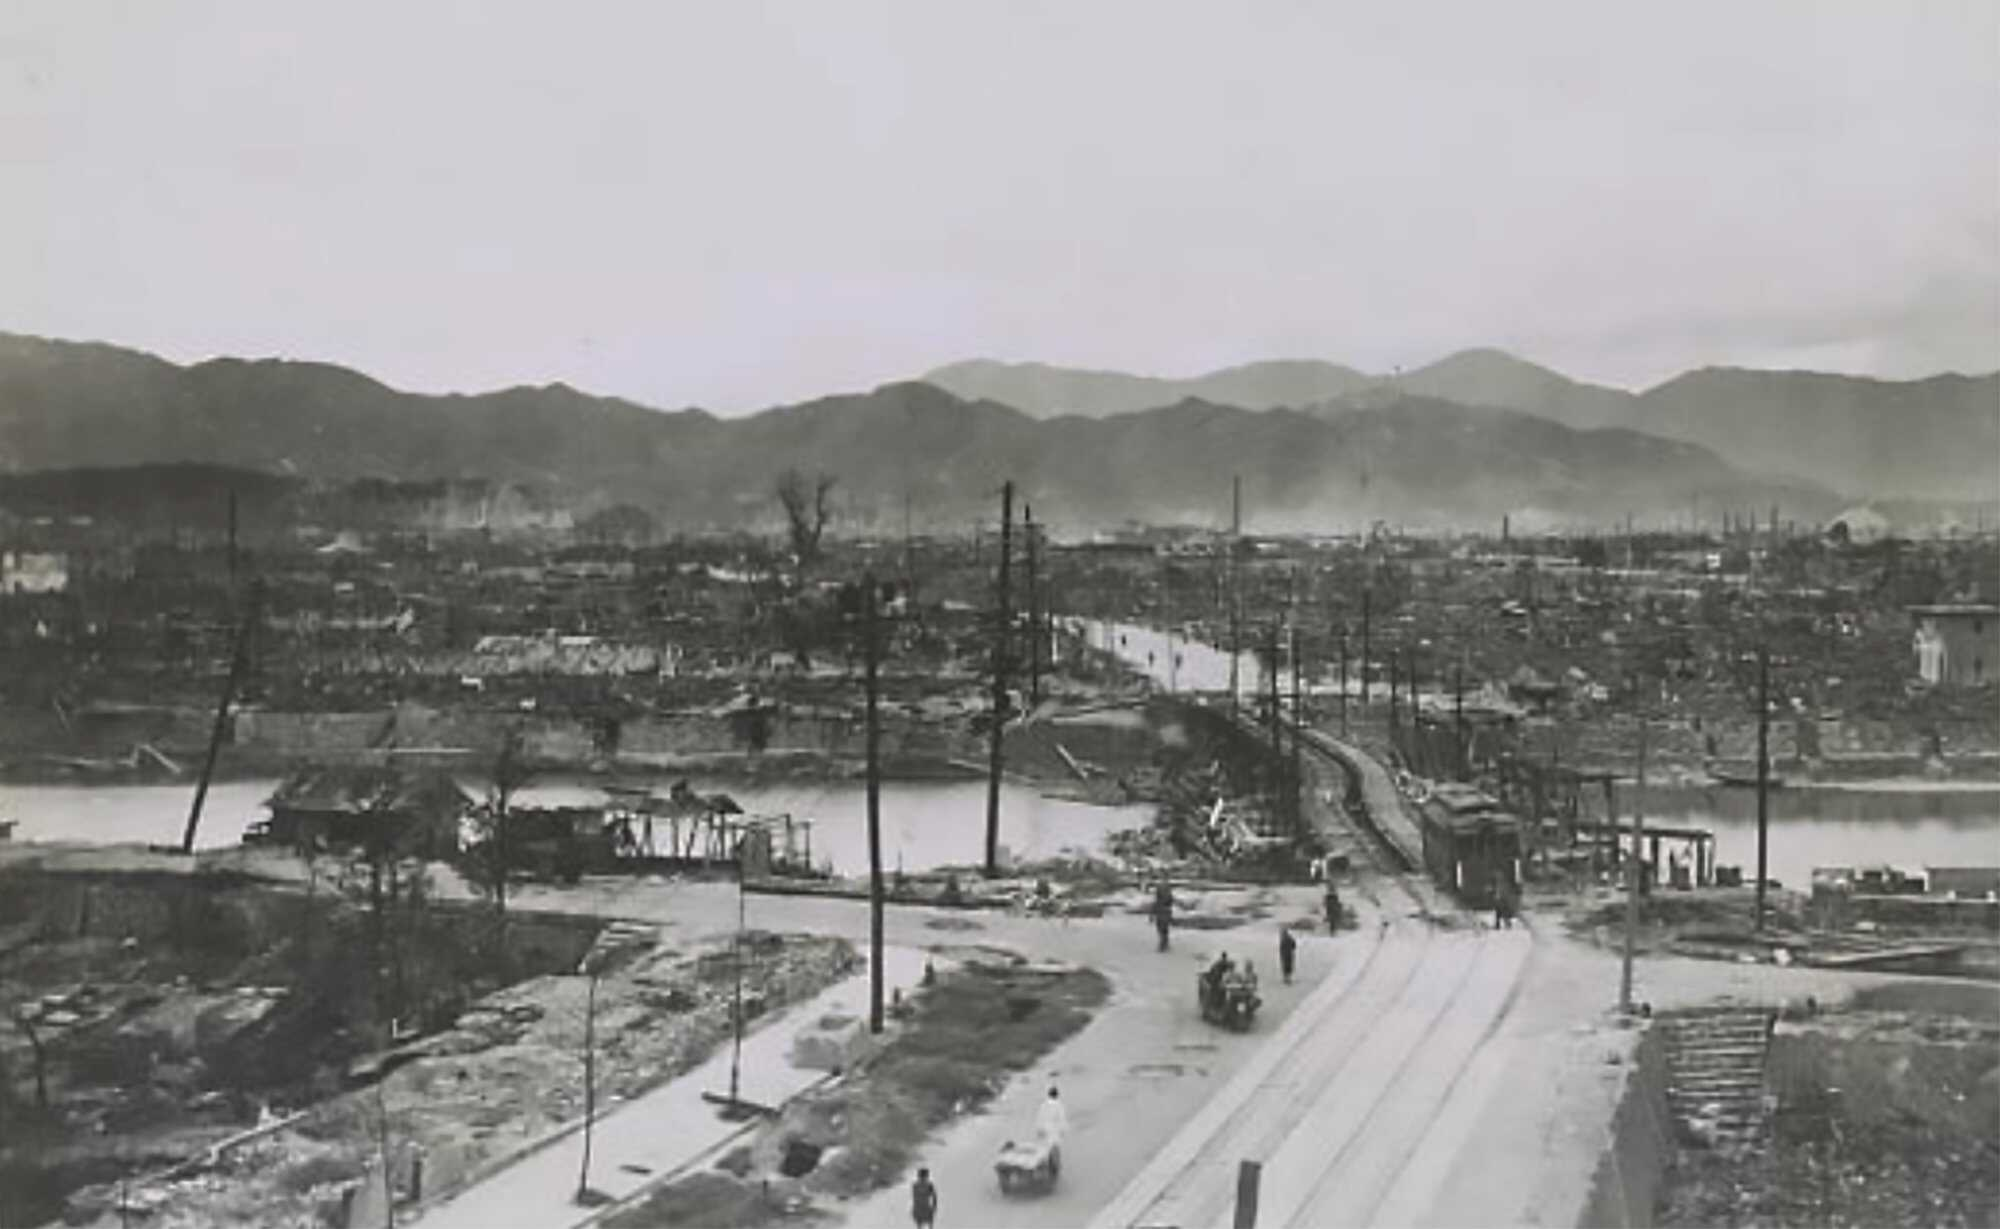 An analysis of the atomic bomb use in 1945 on the japanese city of hiroshima